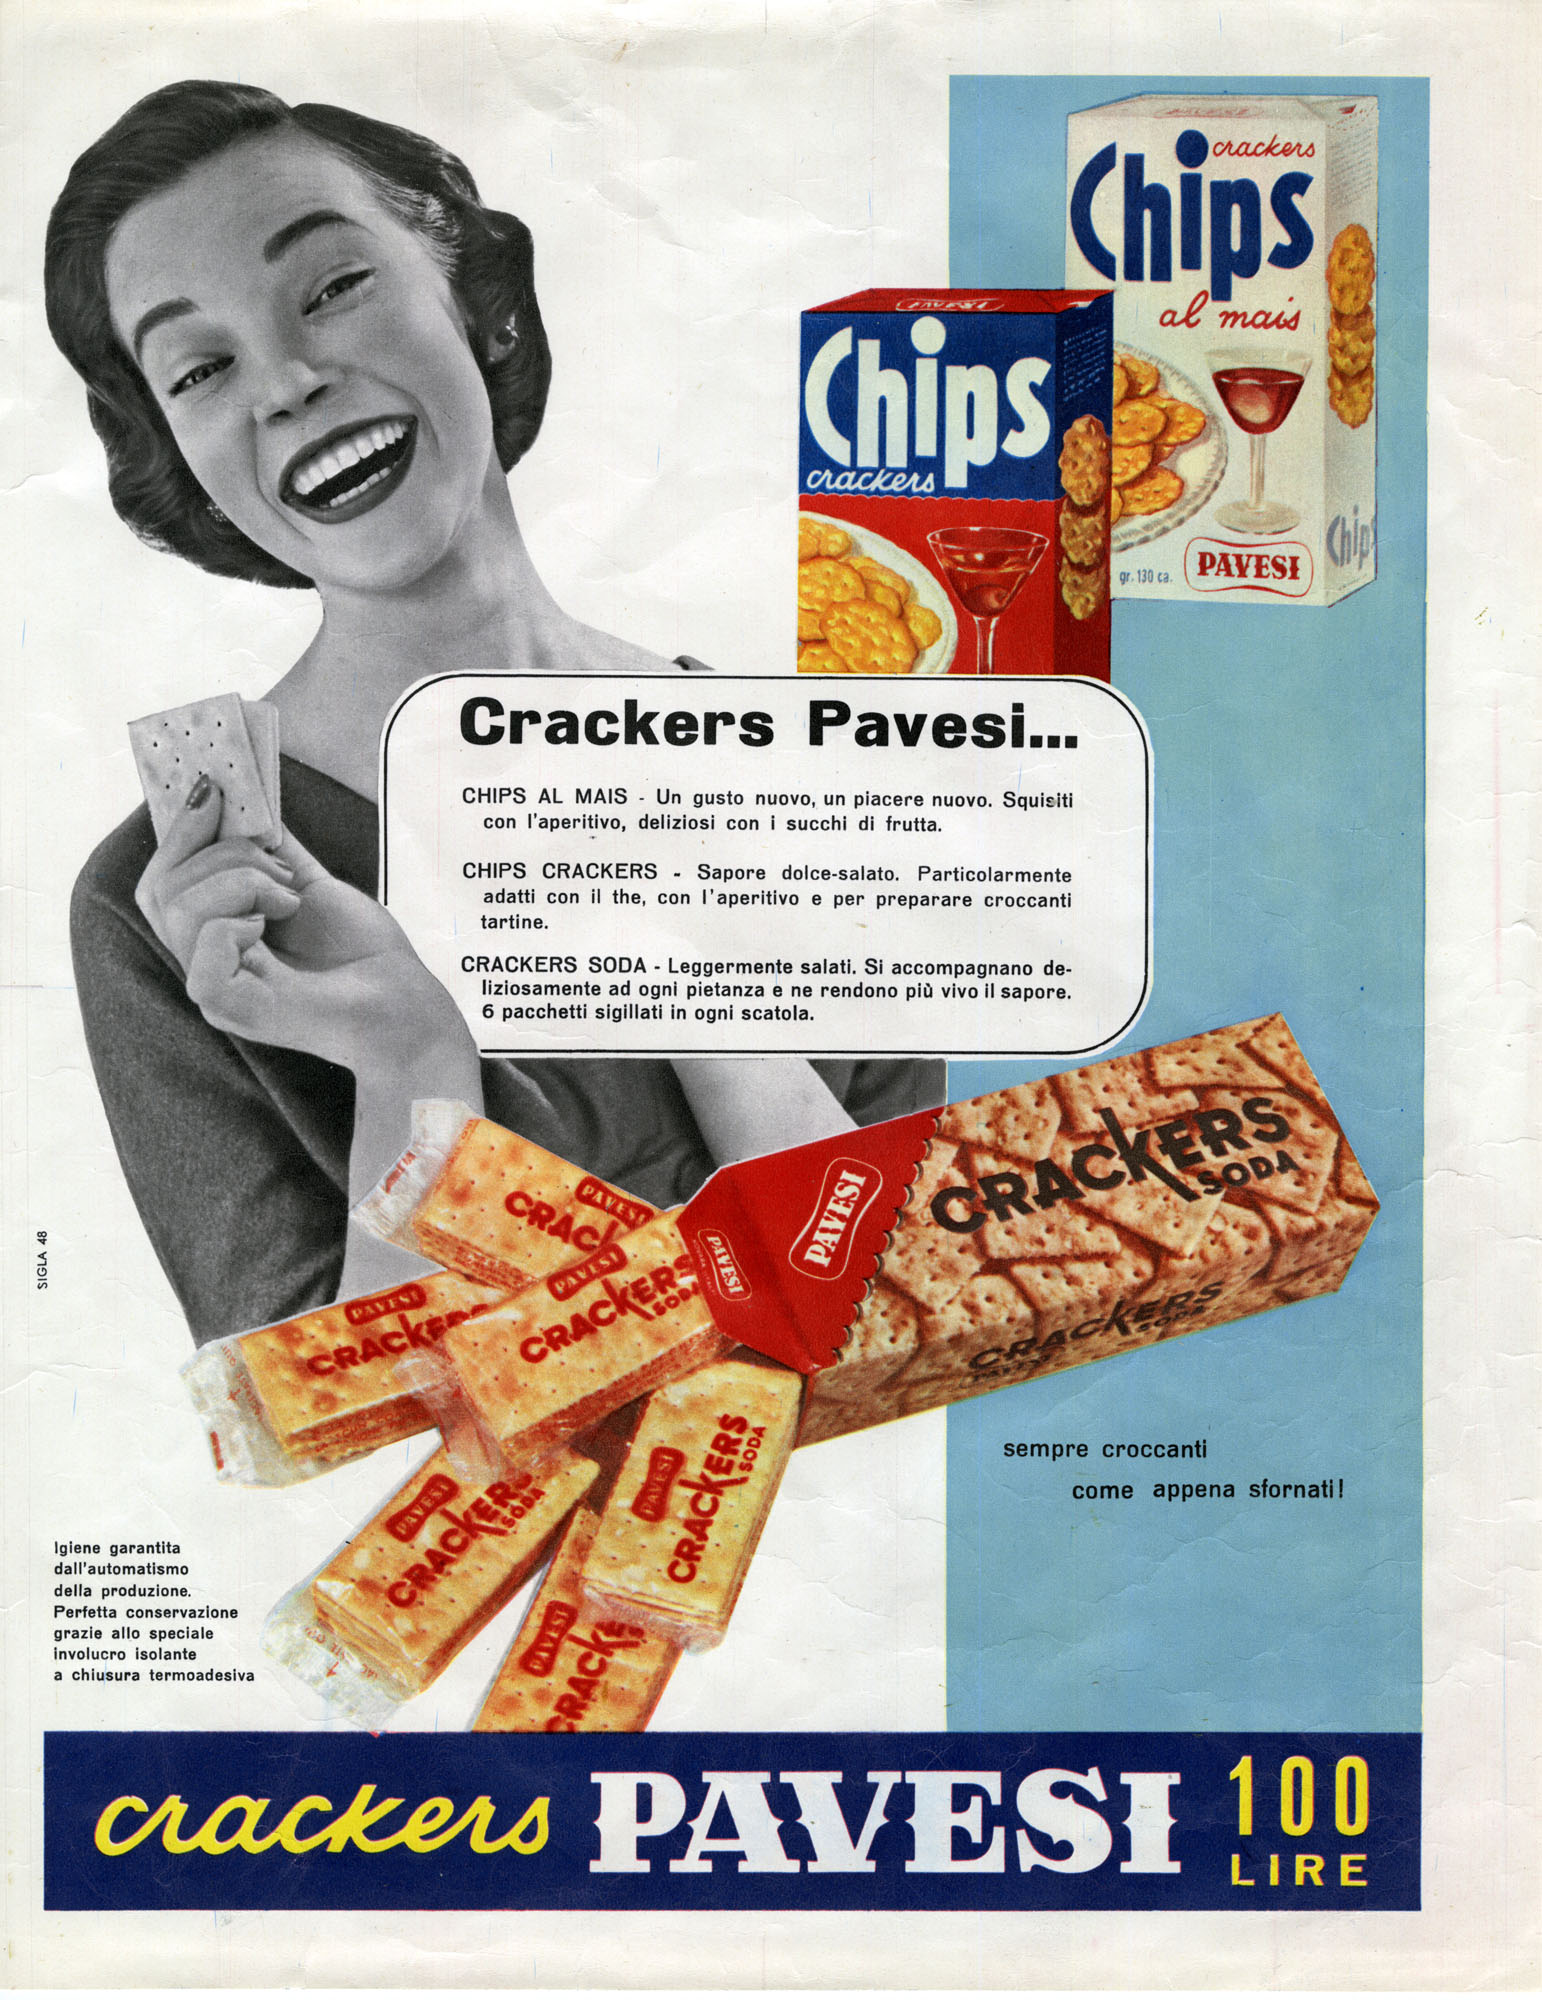 The first Soda Crackers and Pavesi Chips advertising in 1955